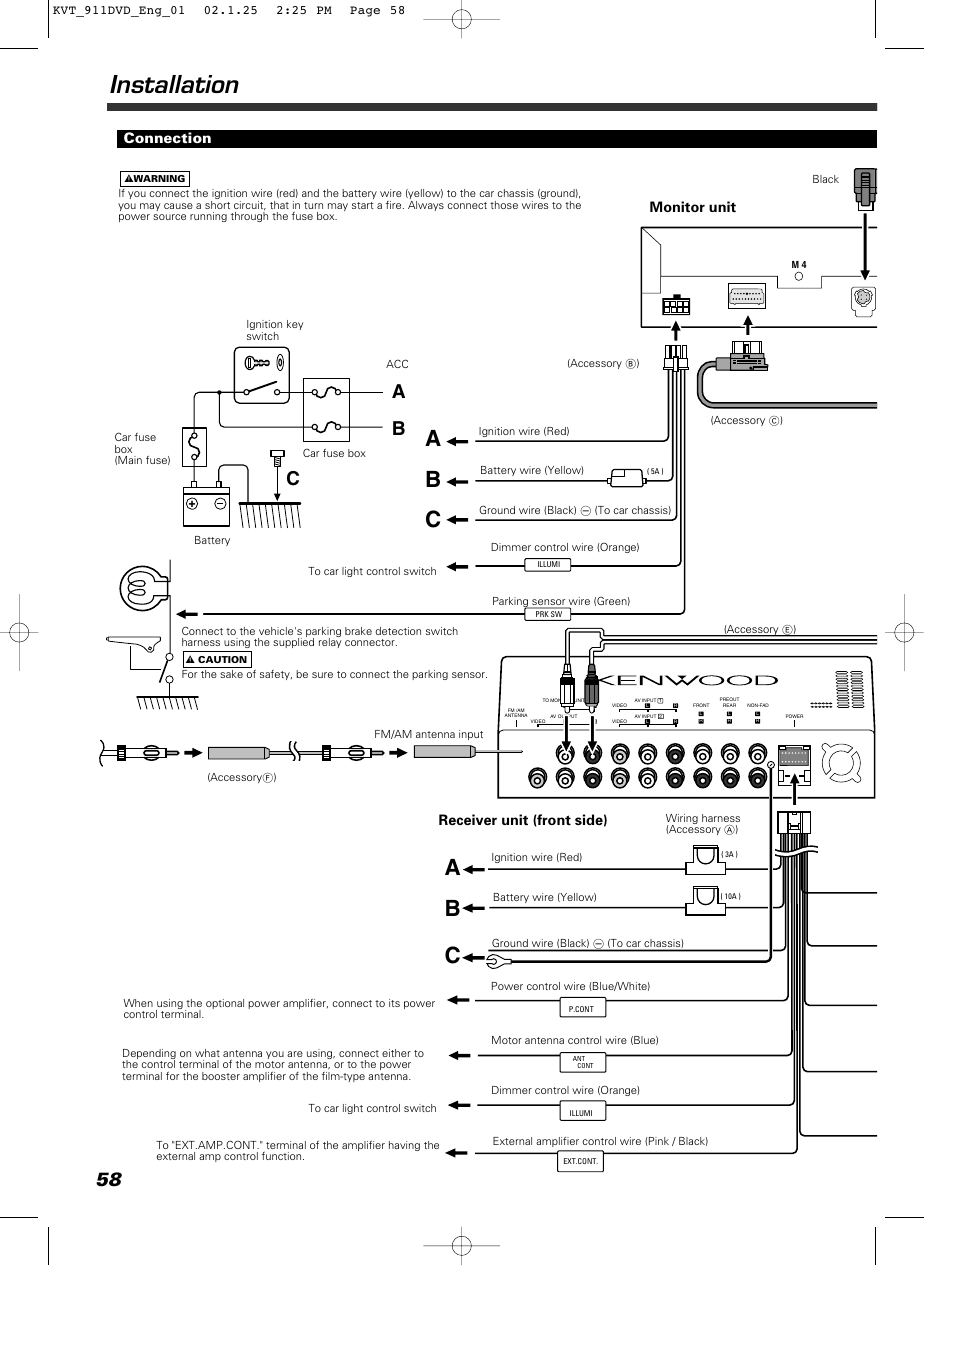 Kenwood Ddx7019 Wiring Harness 30 Diagram Images Ddx318 Kvt 911dvd Page58resized6652c942 Usb Cable